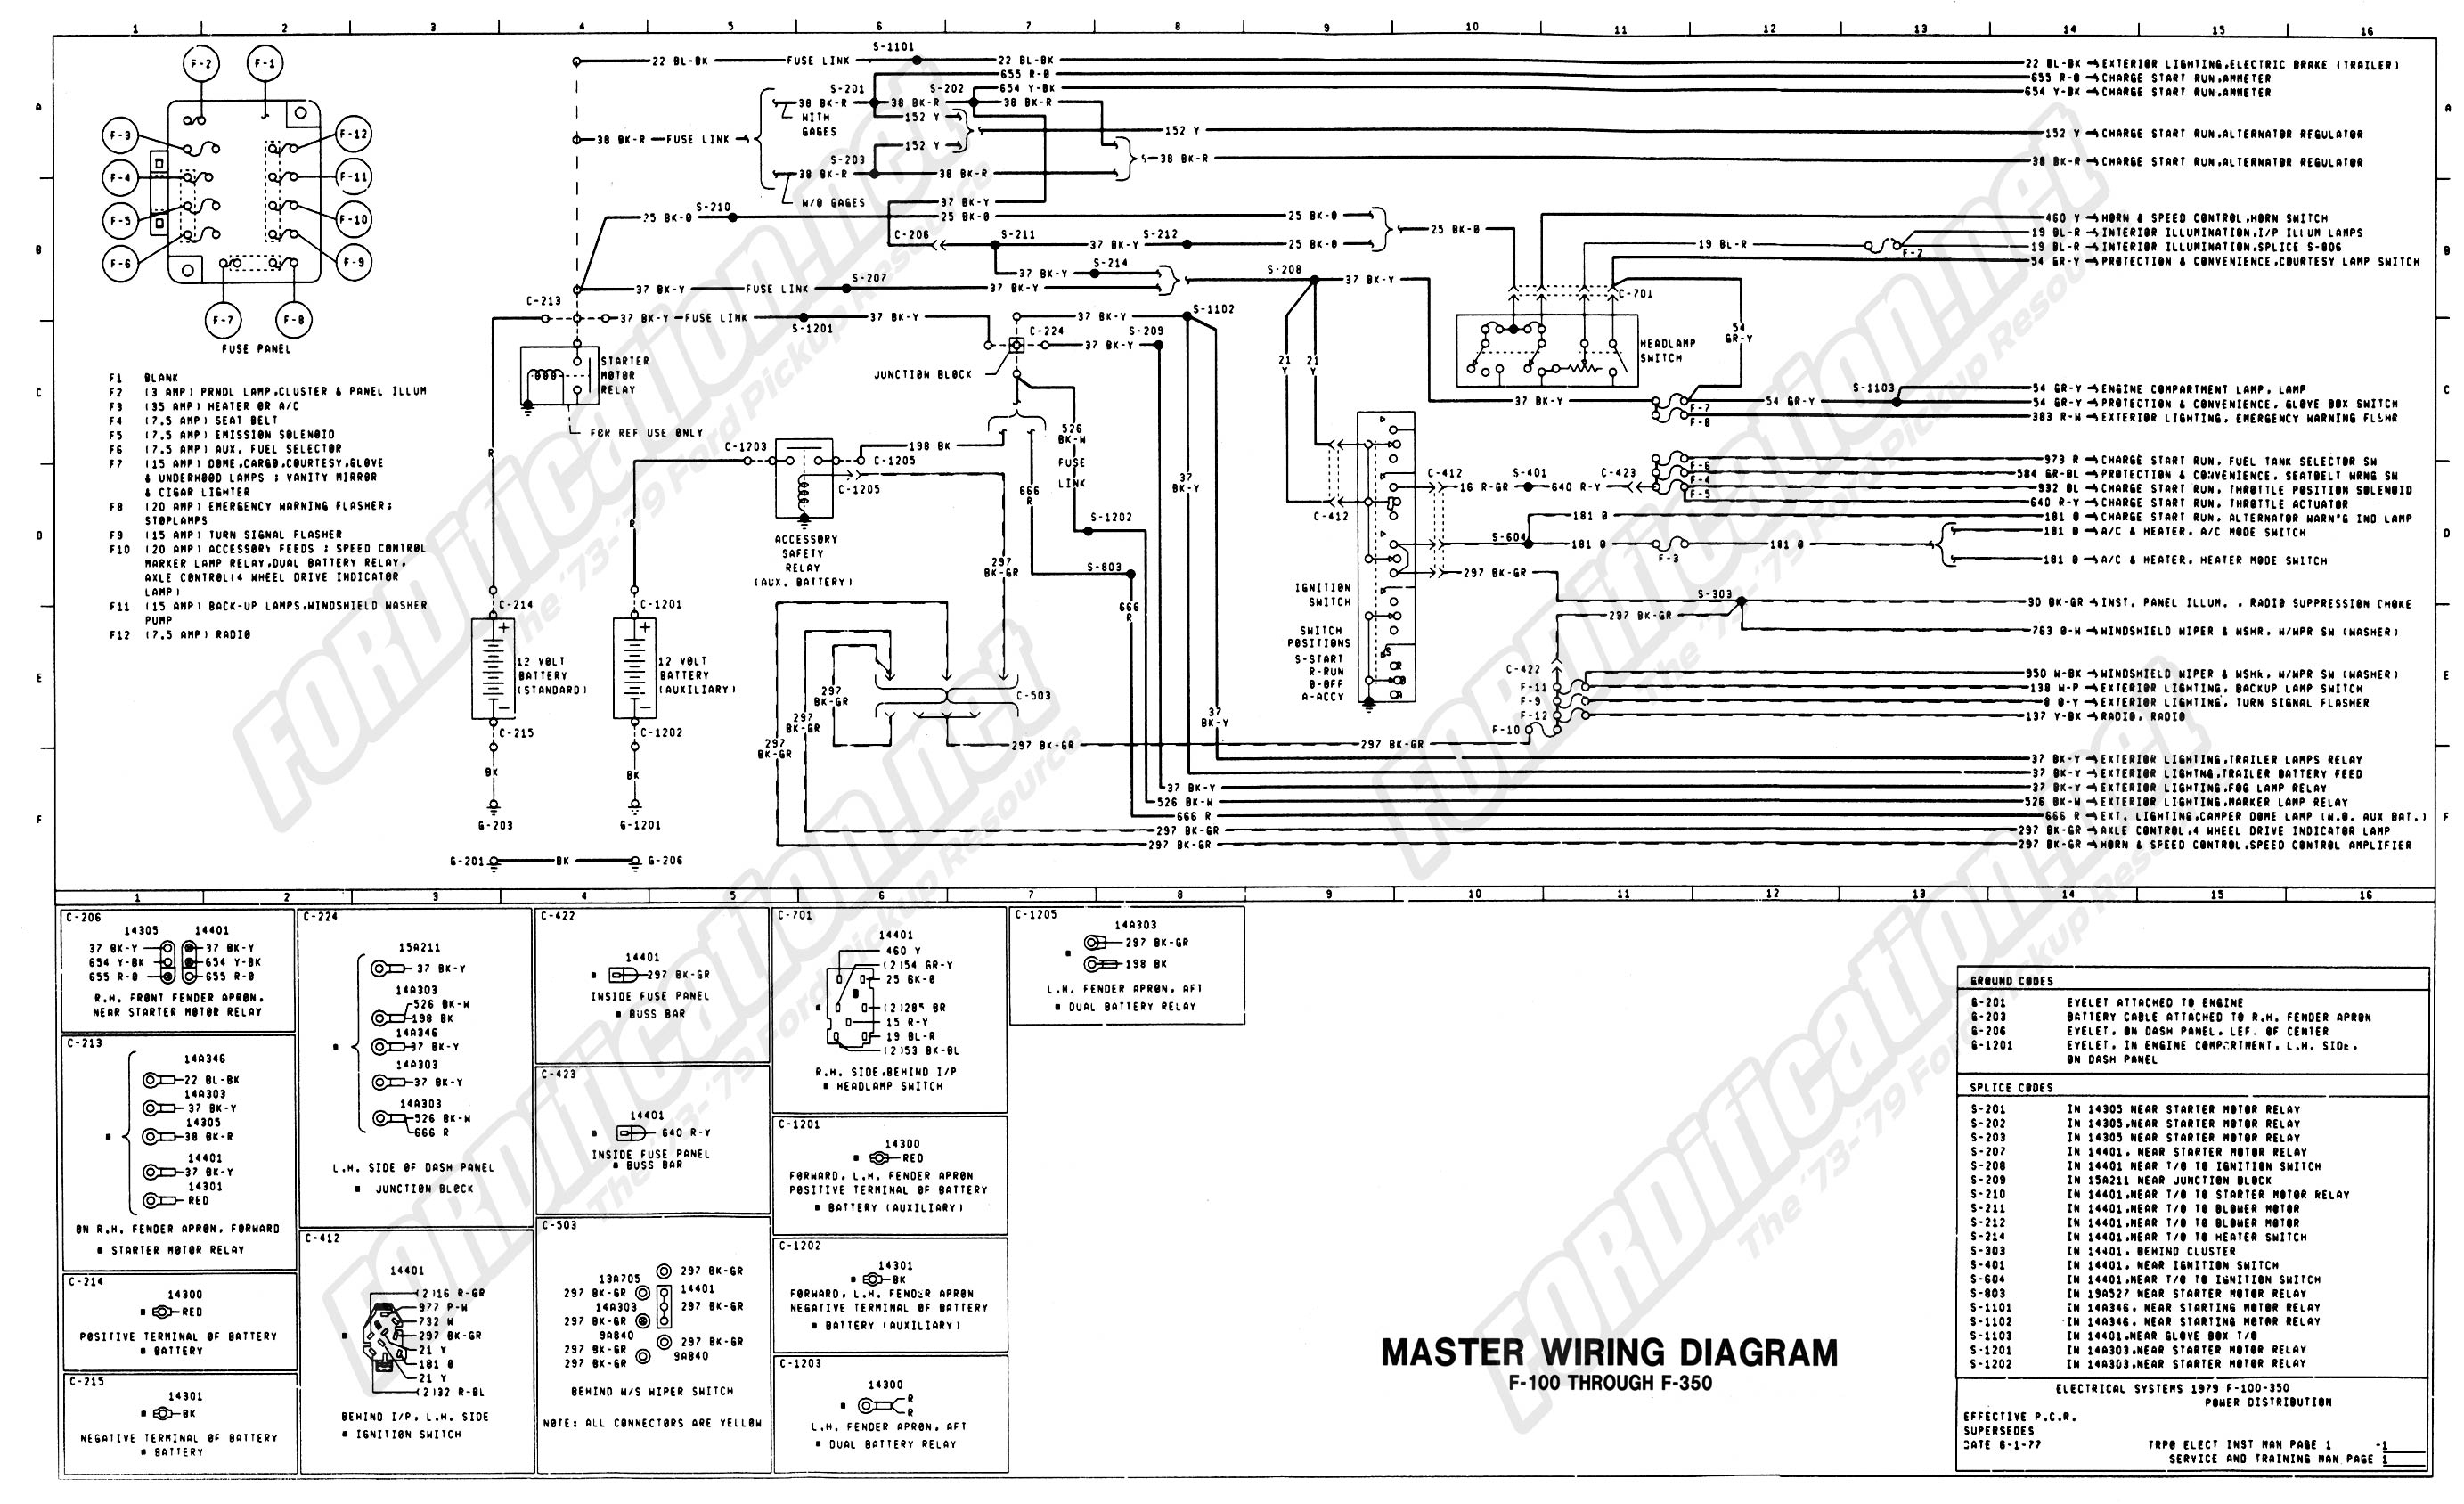 2006 ford F150 Wiring Diagram - Wiring Diagram 1979 ford F150 Ignition Switch and ford Ignition